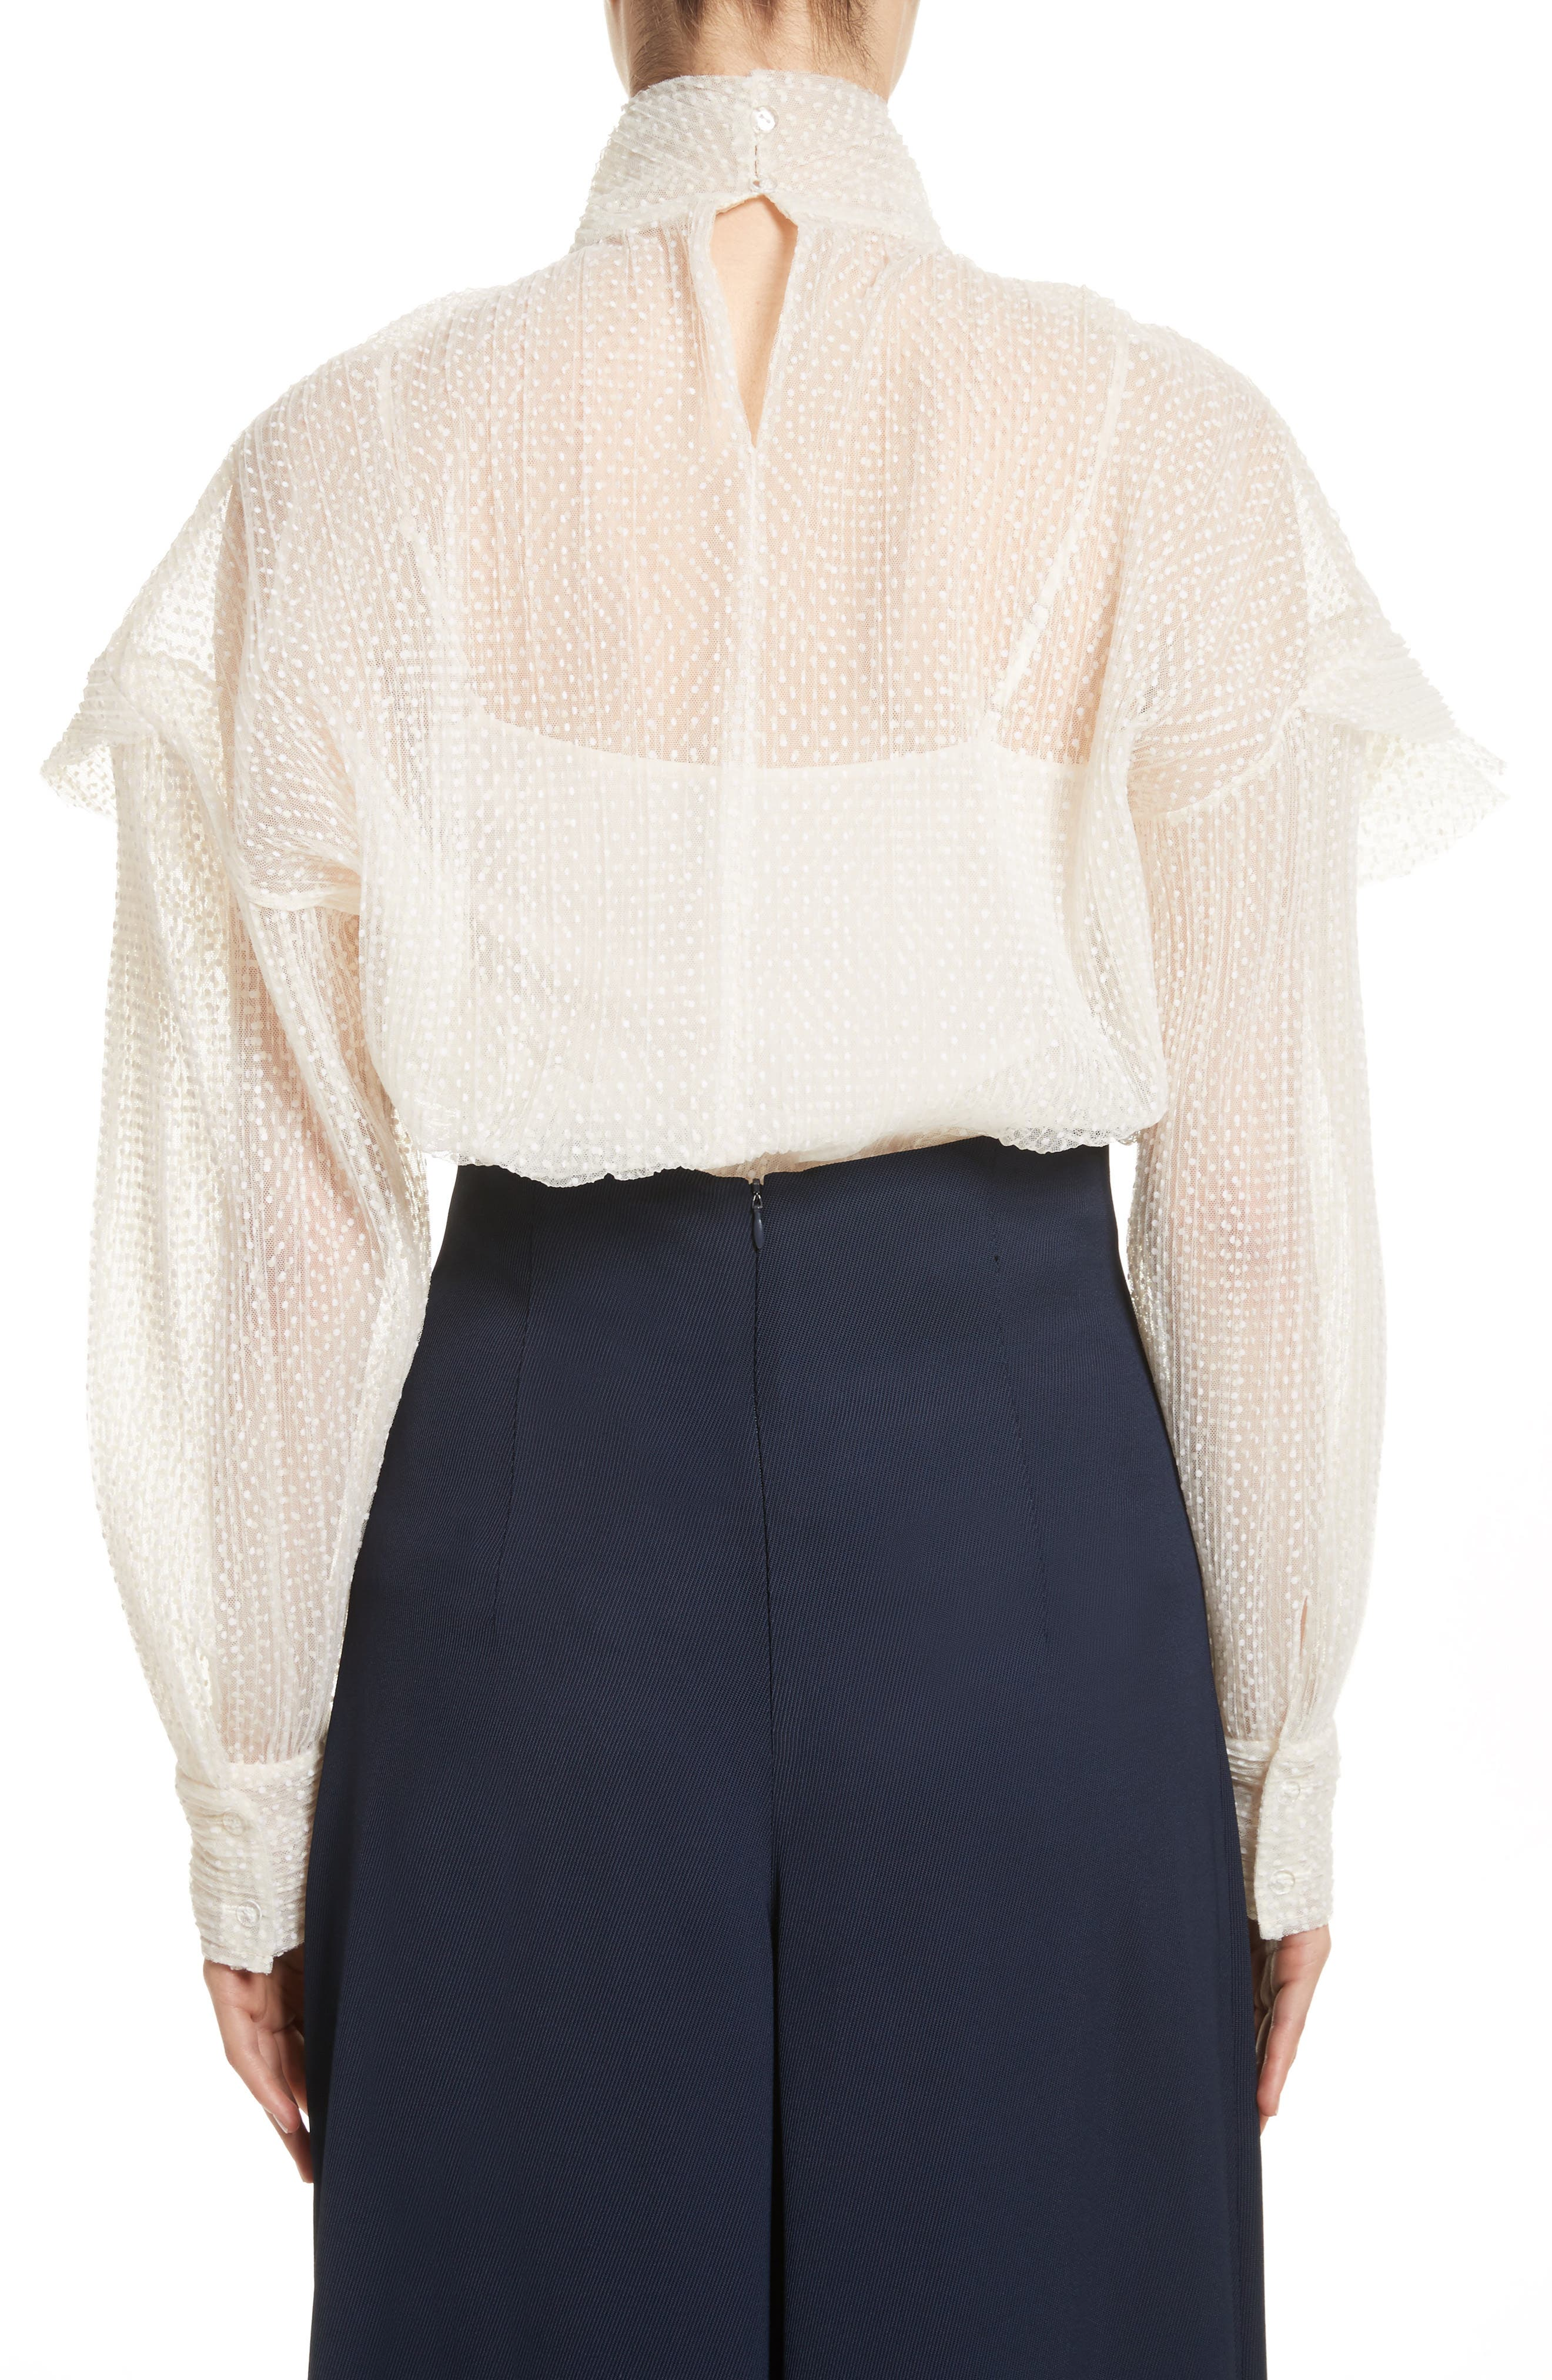 A.W.A.K.E Frill Double Layered Tulle Top,                             Alternate thumbnail 2, color,                             900